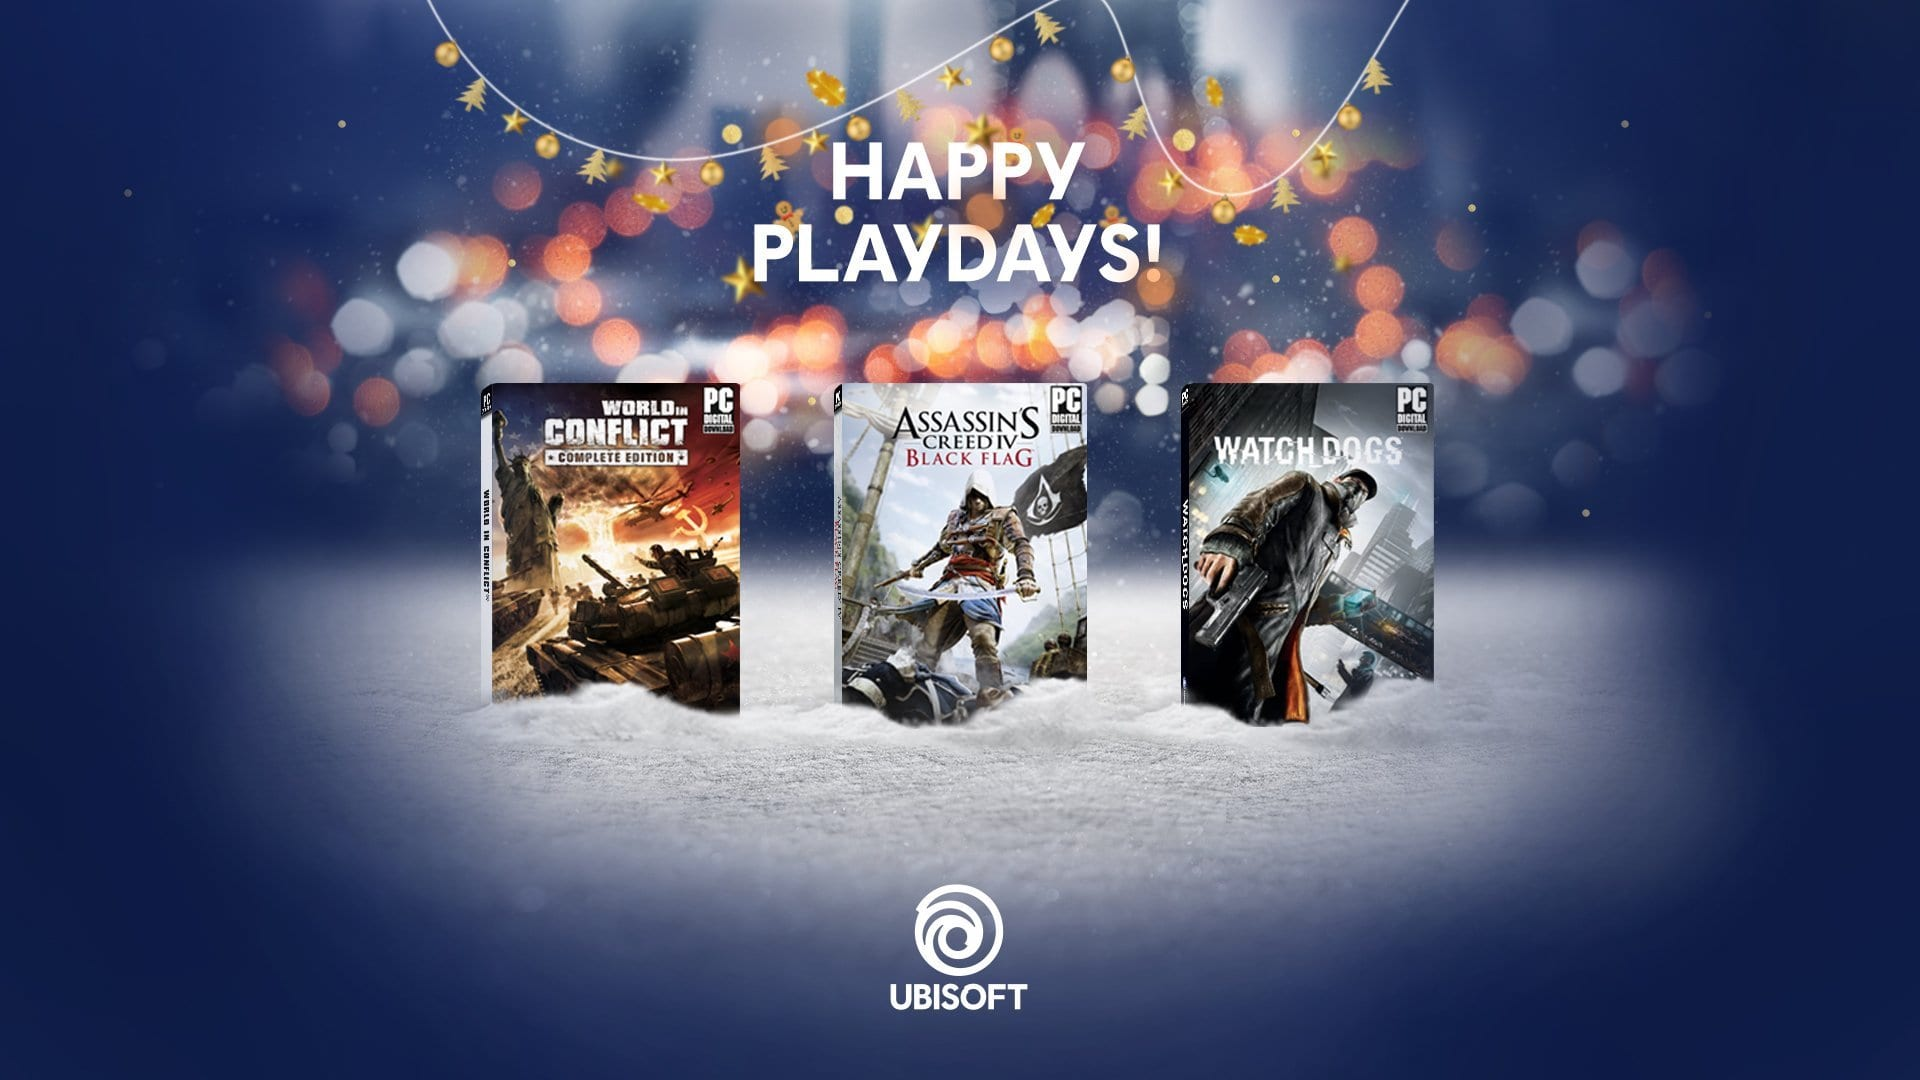 Ubisoft Releases Free PC Holiday Bundle This Week Only